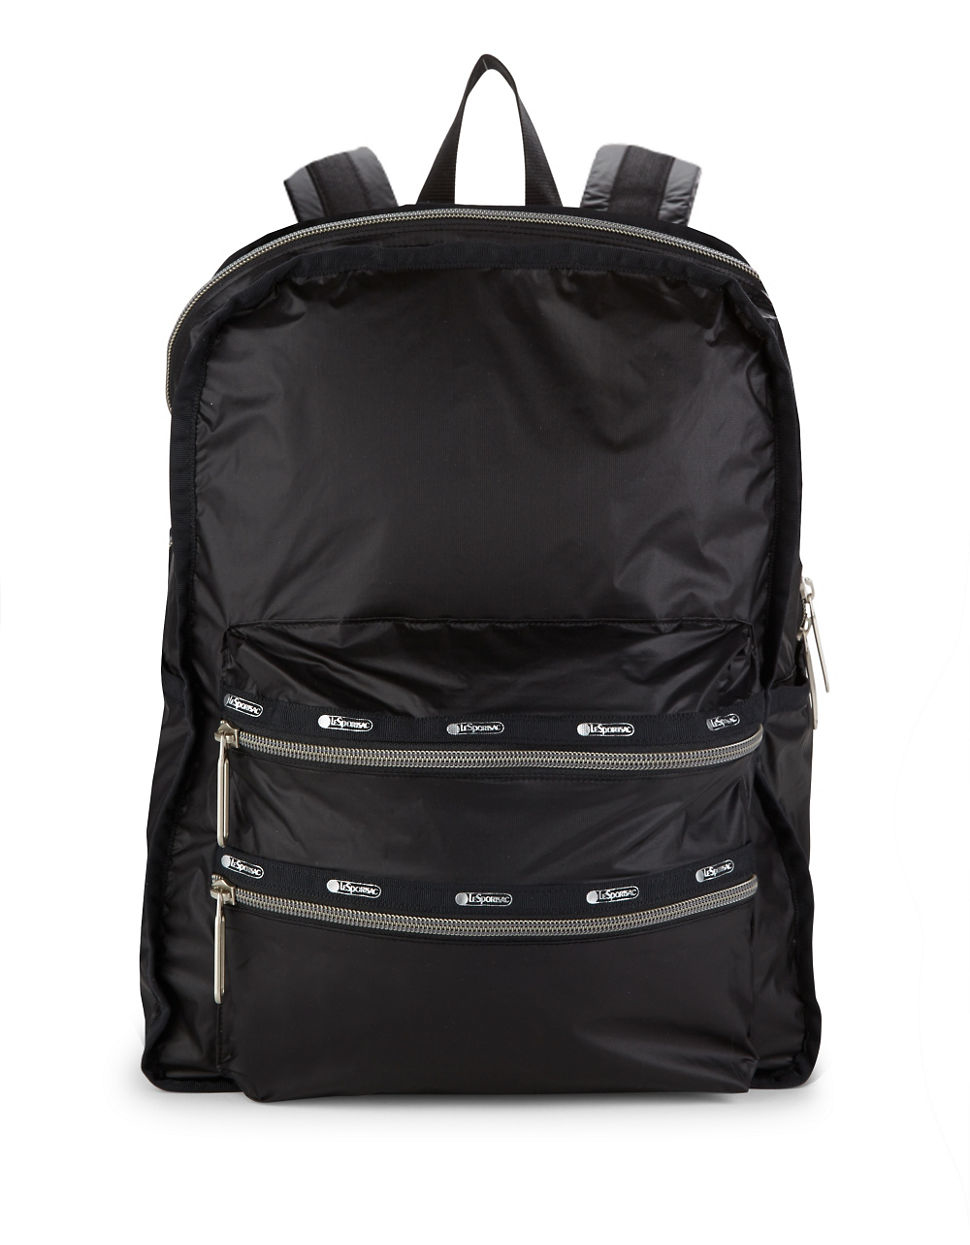 Lord Of The Rings Backpack Uk